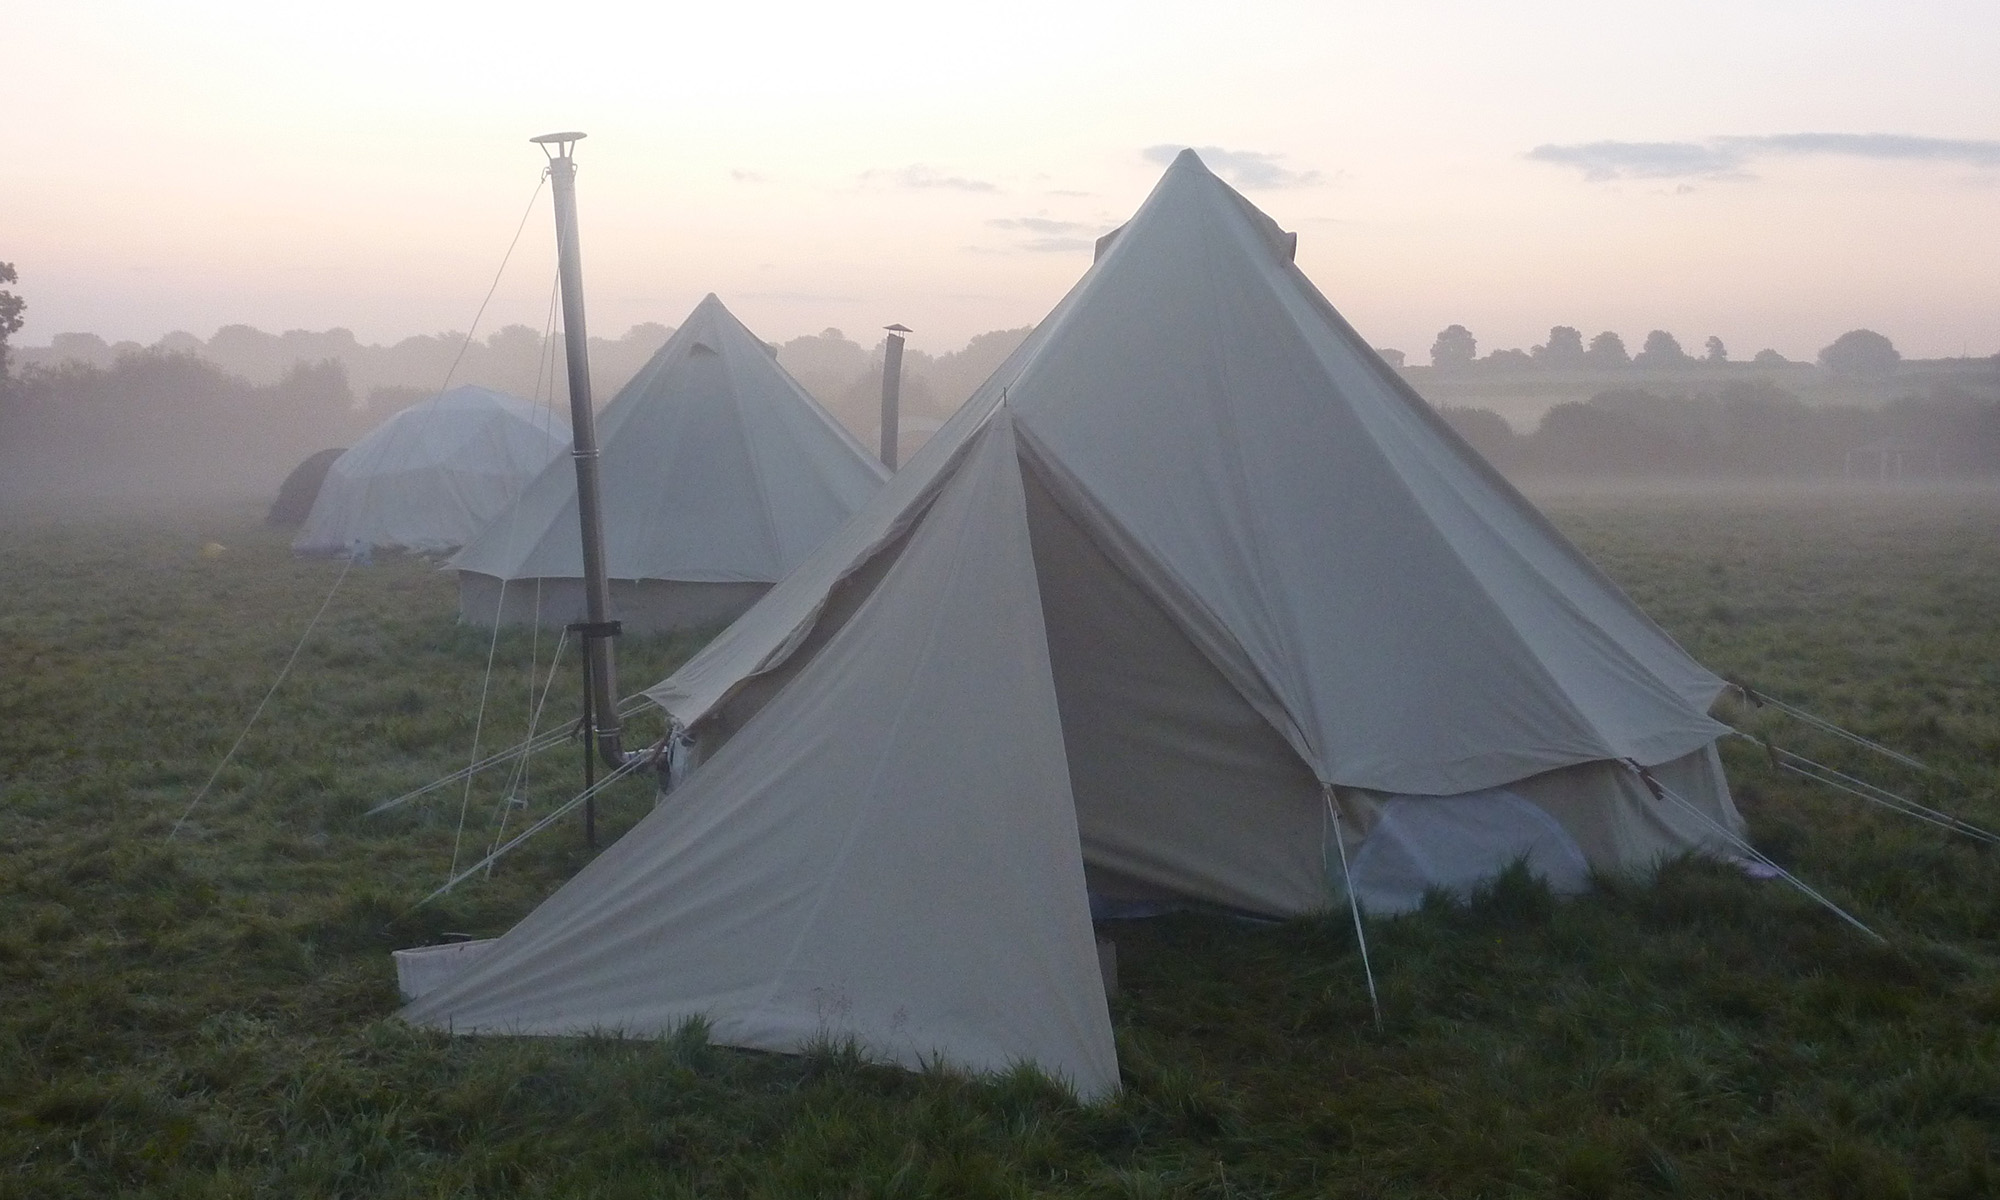 A bell tent in the foreground with other tents and domes in the background. It's dawn and misty at Queer Pagan Camp